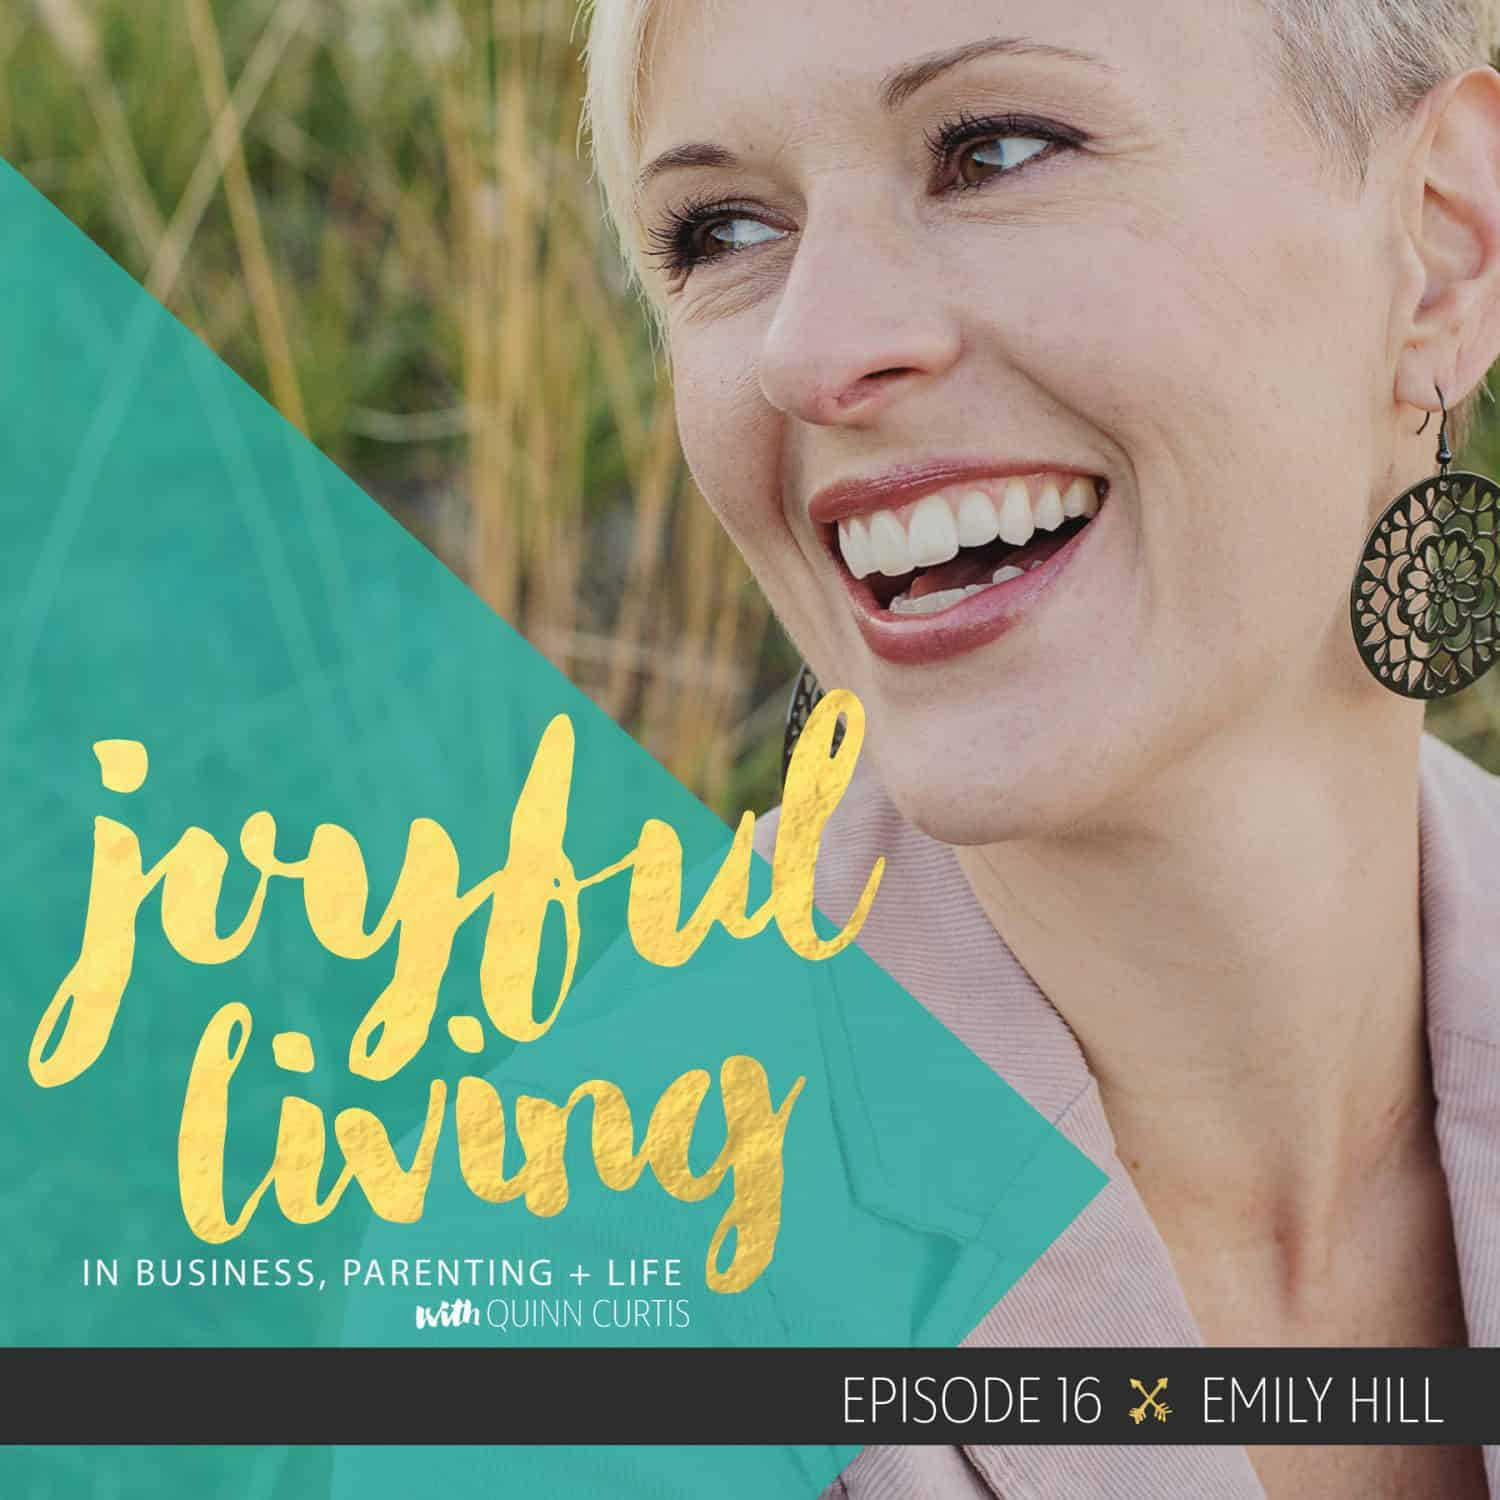 Finding Joy and Sanity in Everyday Living